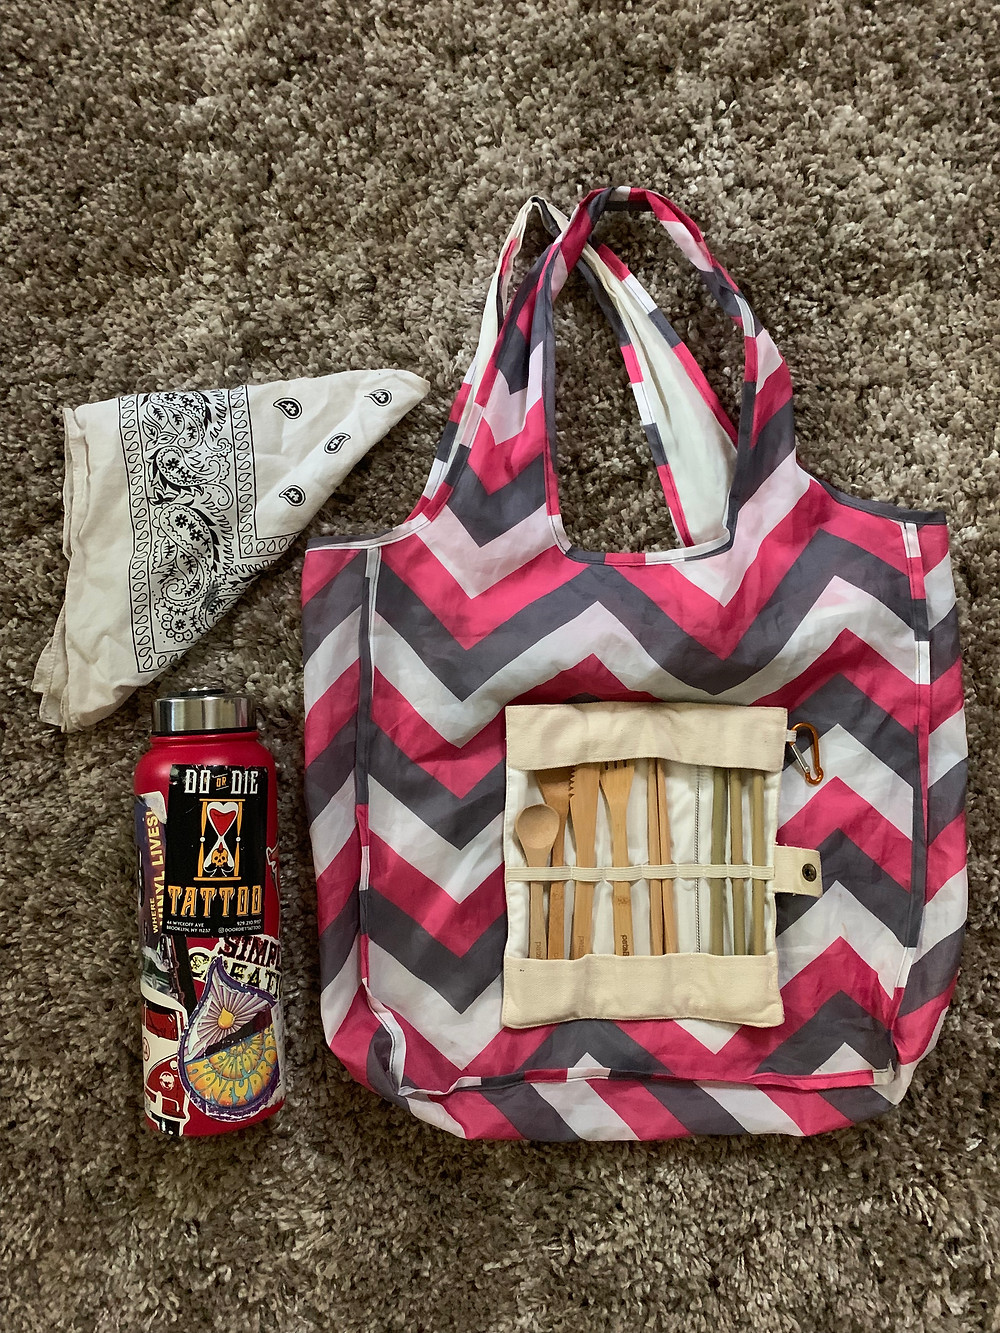 A reusable bag, a handkerchief, a stainless steal bottle, and set of bamboo silverware to encourage those to reduce waste.